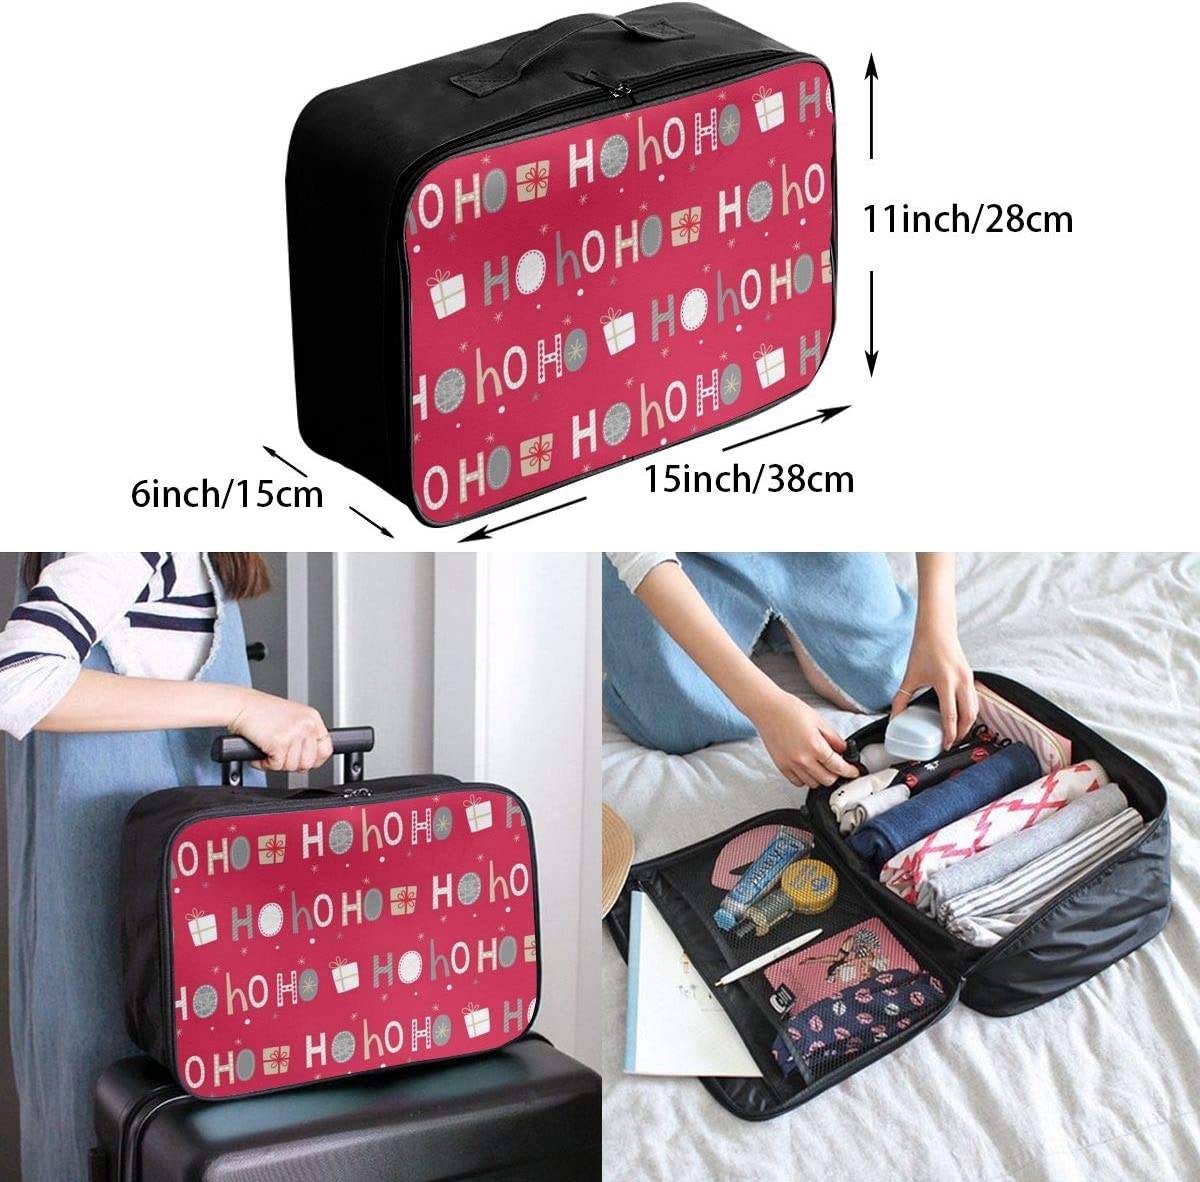 Ho-ho-ho Letter Christmas Gift Lightweight LargeTravel Storage Luggage Trolley Bag Travel Duffel Bags Carry-On Tote